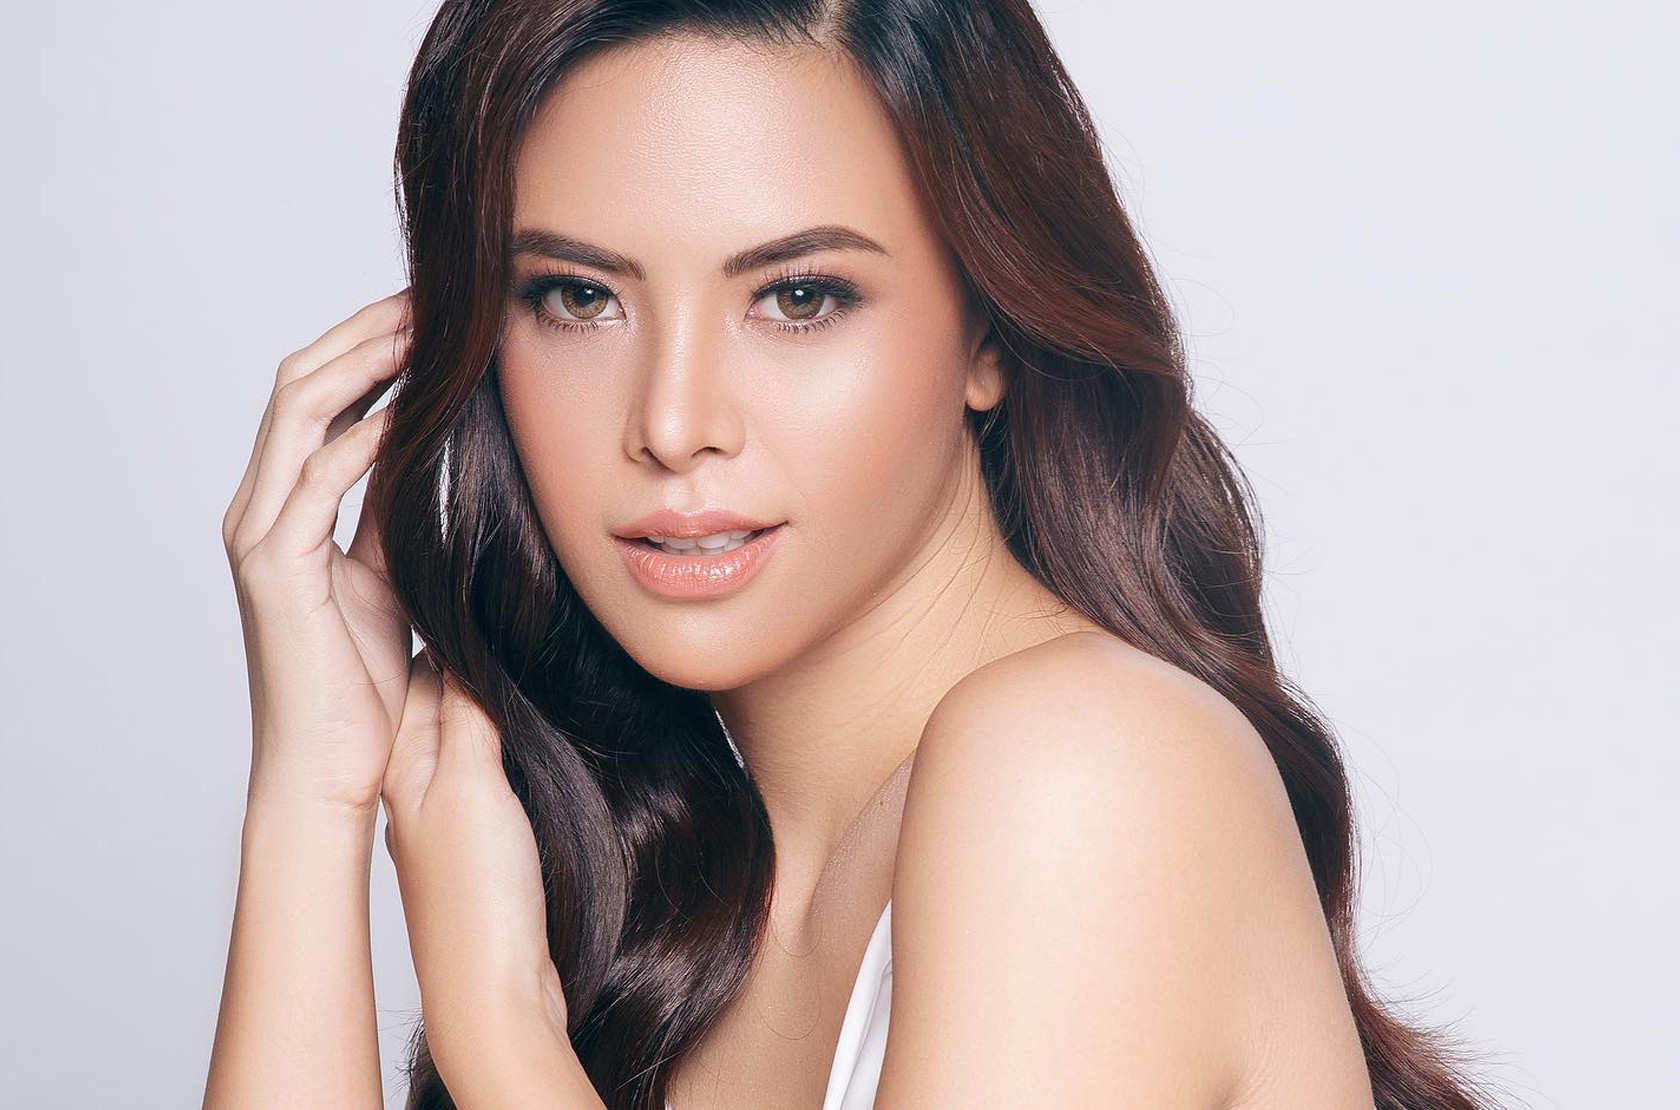 TRACY PEREZ WAS CROWNED AS THE NEW MISS WORLD PHILIPPINES